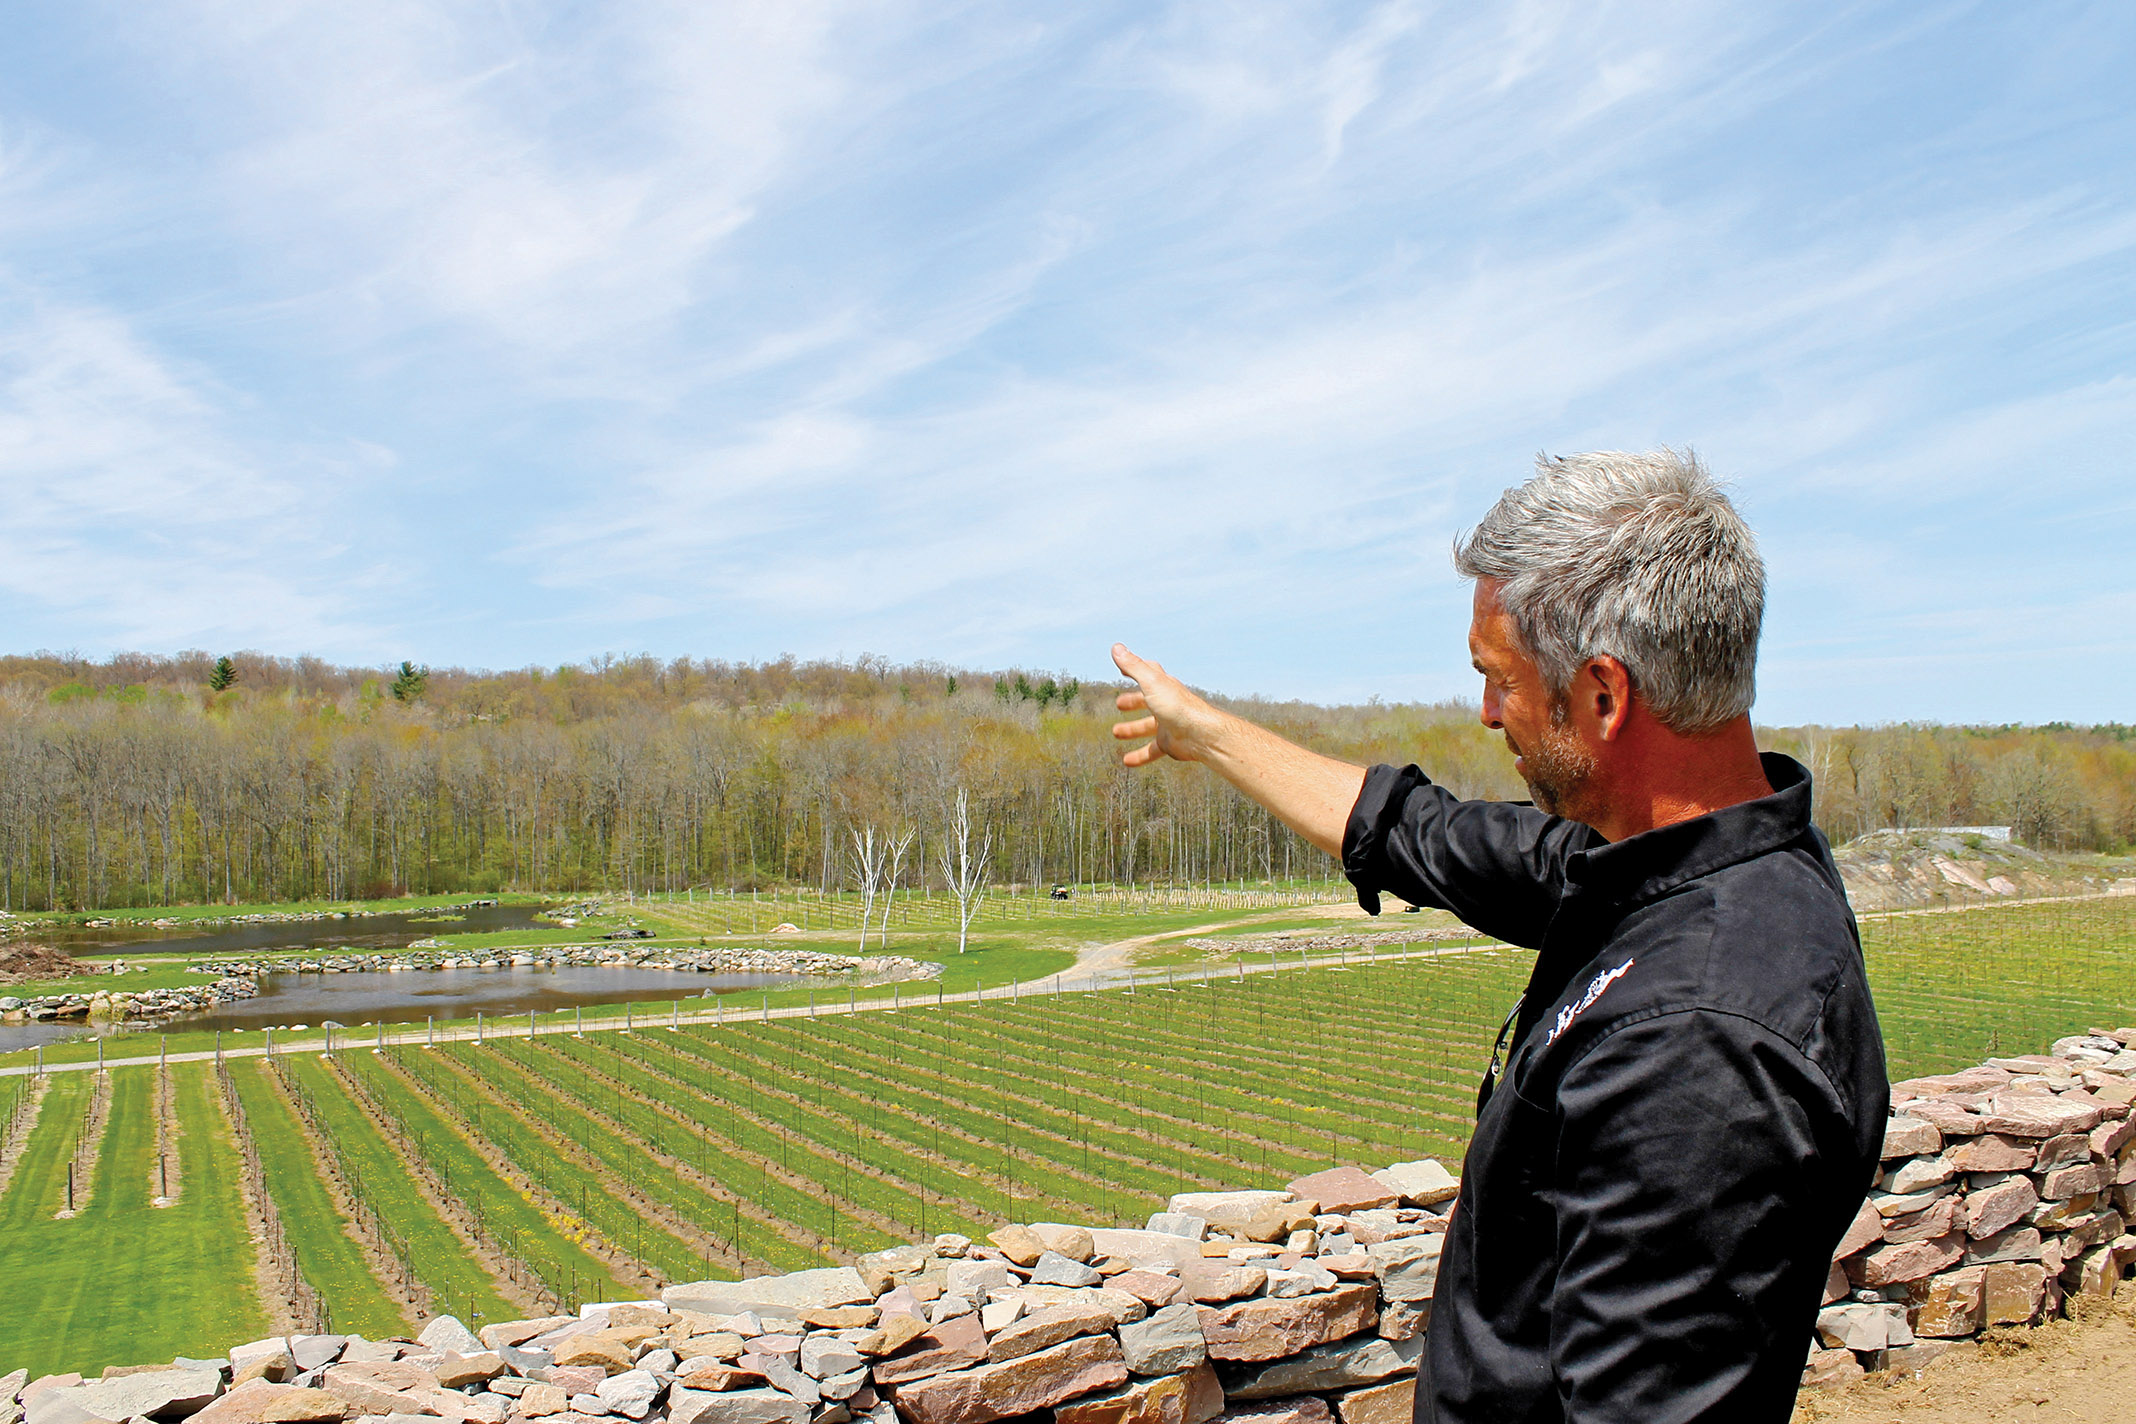 Big dreams just get bigger: Johnson describes future plans for Hasting's first winery, including more construction, landscaping, and hosting weddings and special events.  Photo by Michelle Annette Tremblay